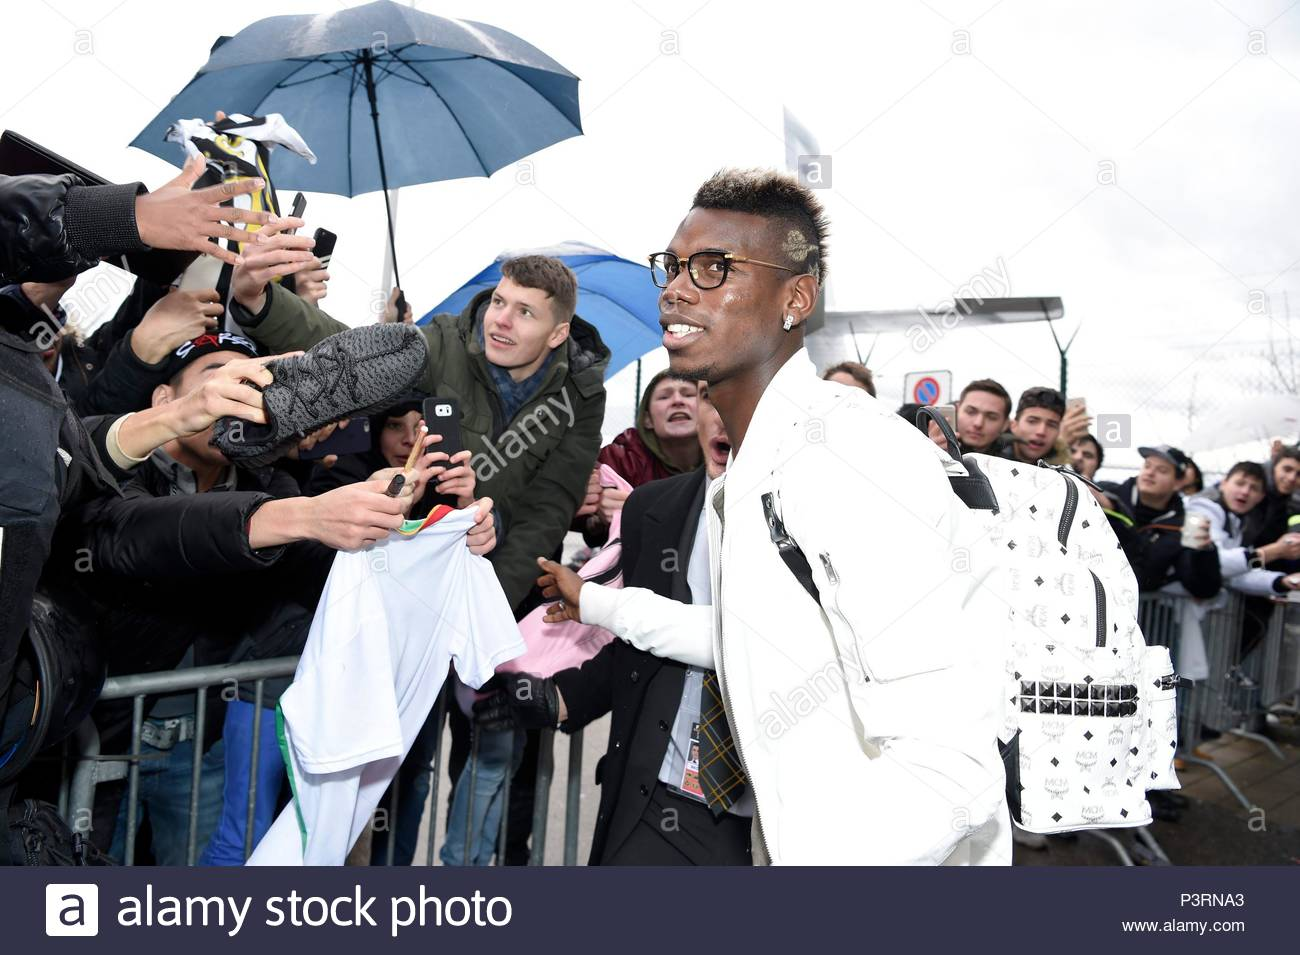 Paul Pogba. 11JAN2016 Soccer stars arriving at Zurich airport for the FIFA Ballon d'Or Gala 2015 at the Kongresshalle in Zurich. - Stock Image